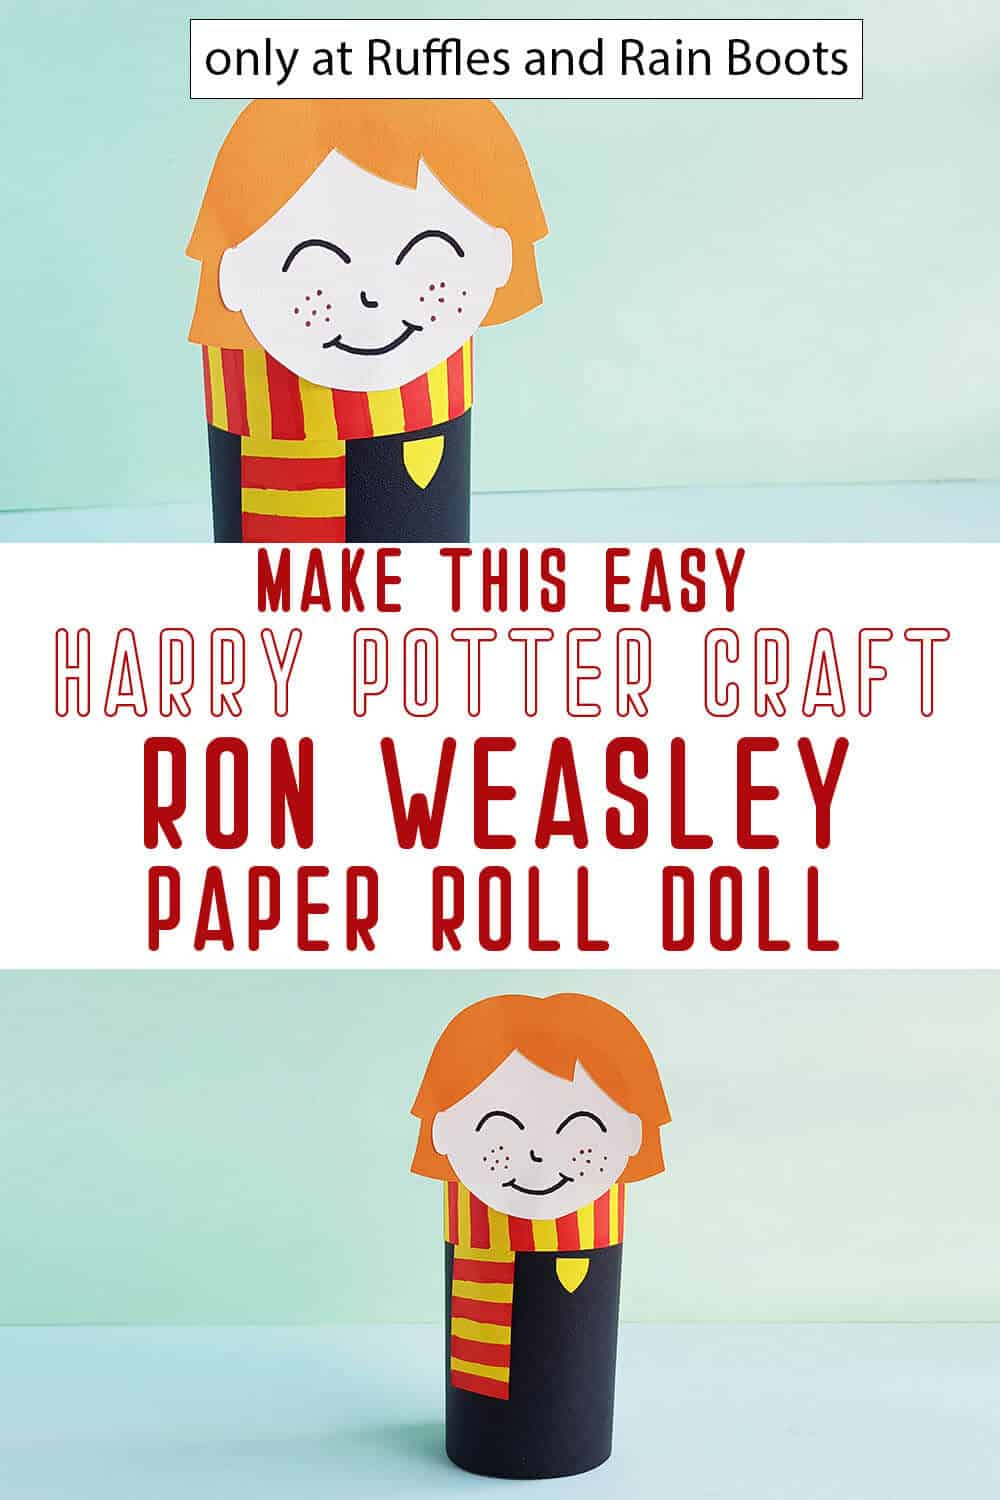 photo collage of harry potter craft ron weasley paper roll doll with text which reads make this easy harry potter craft ron weasley paper roll doll